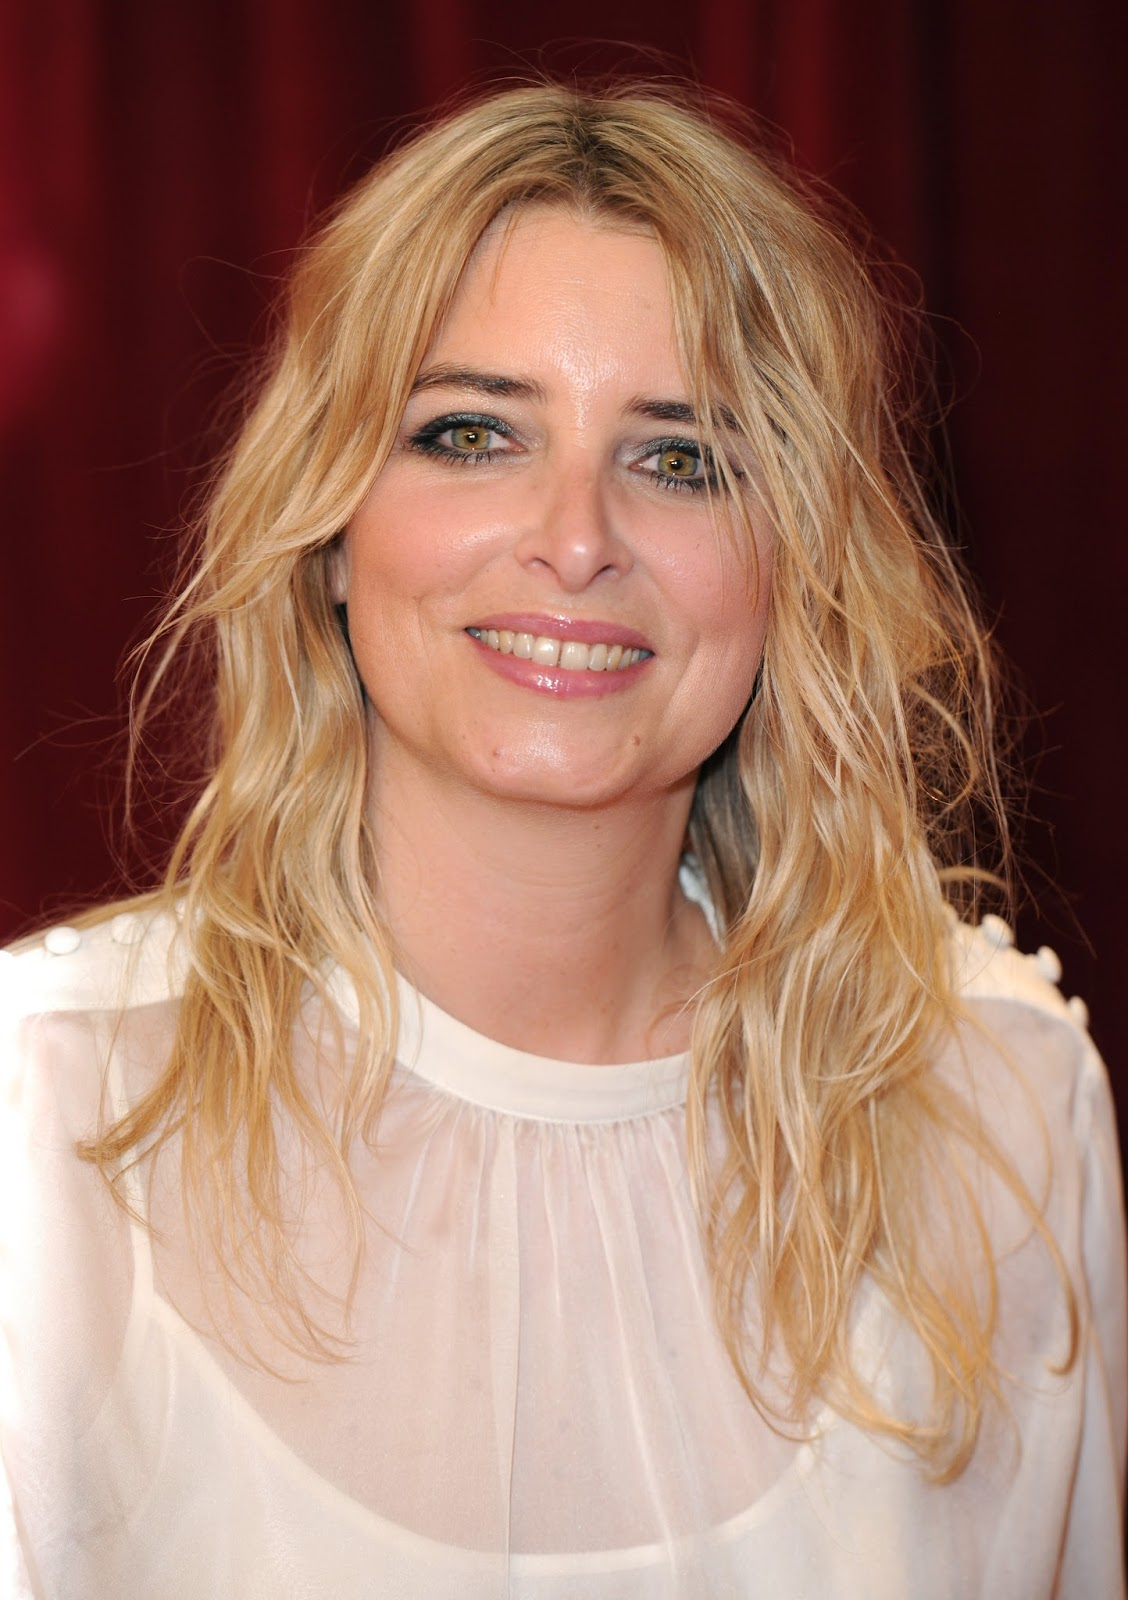 Image Result For British Actresses Naked